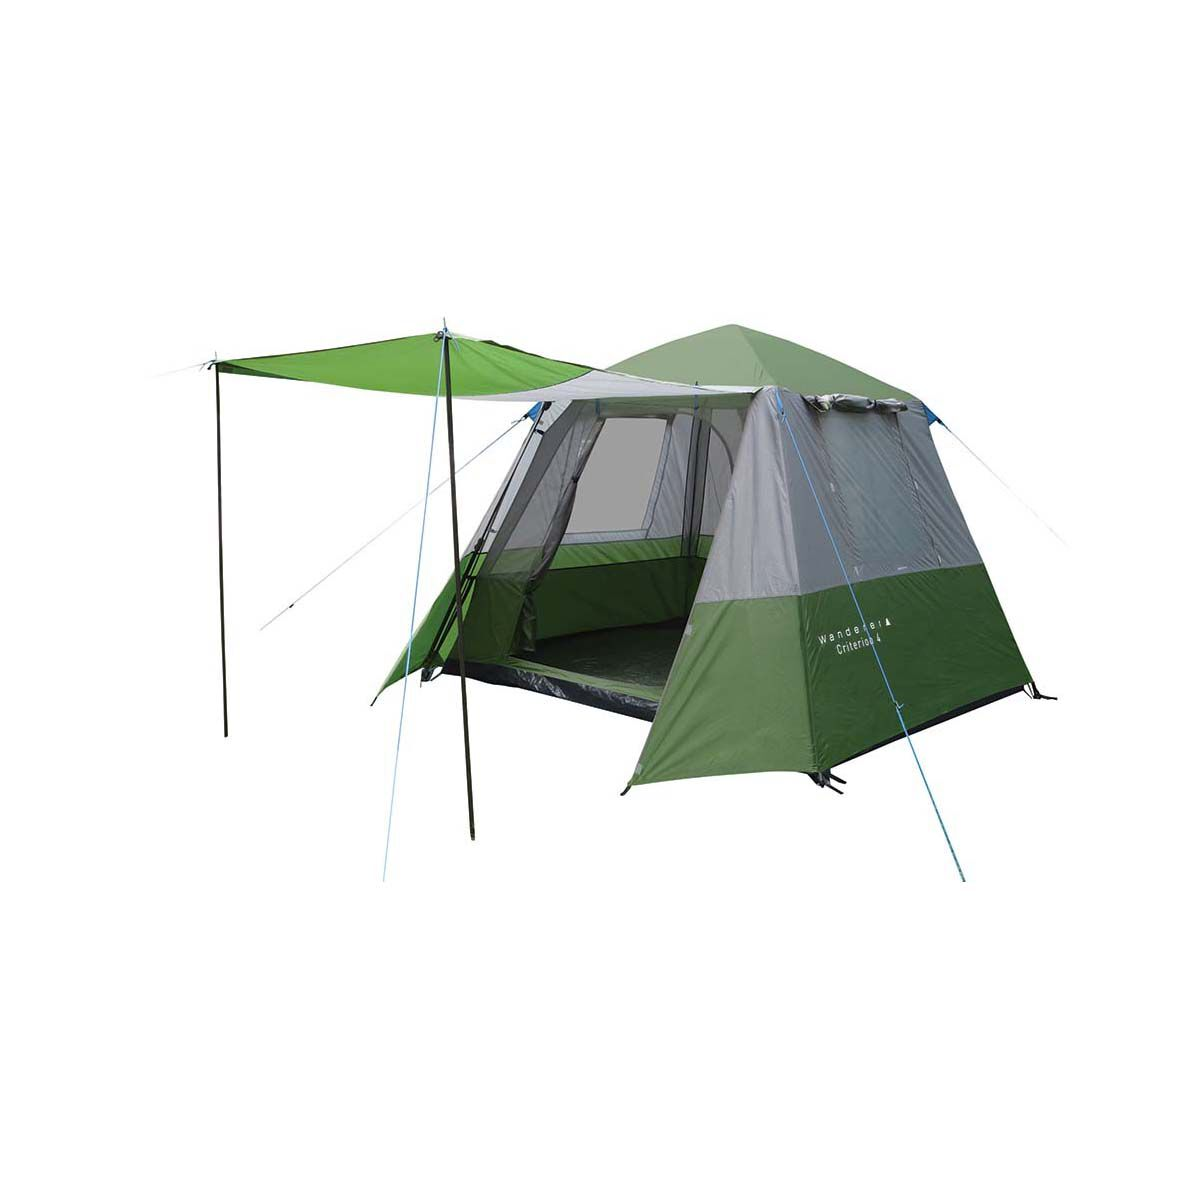 Wanderer Criterion 4 Person Instant Tent  @ BCF